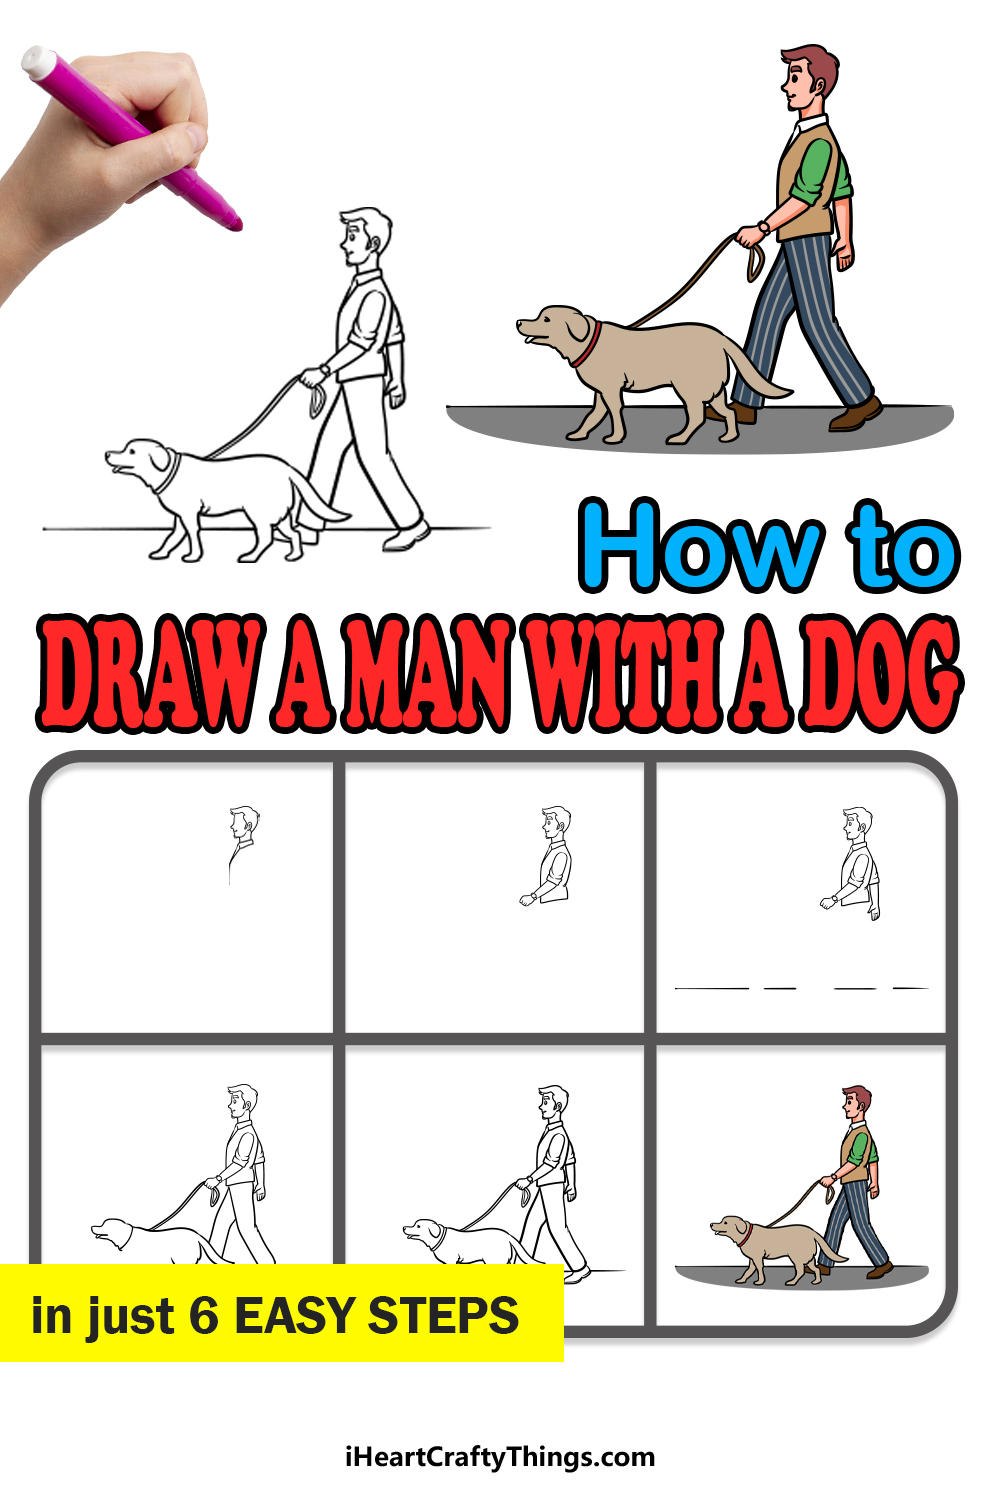 how to draw a man with a dog in 6 easy steps